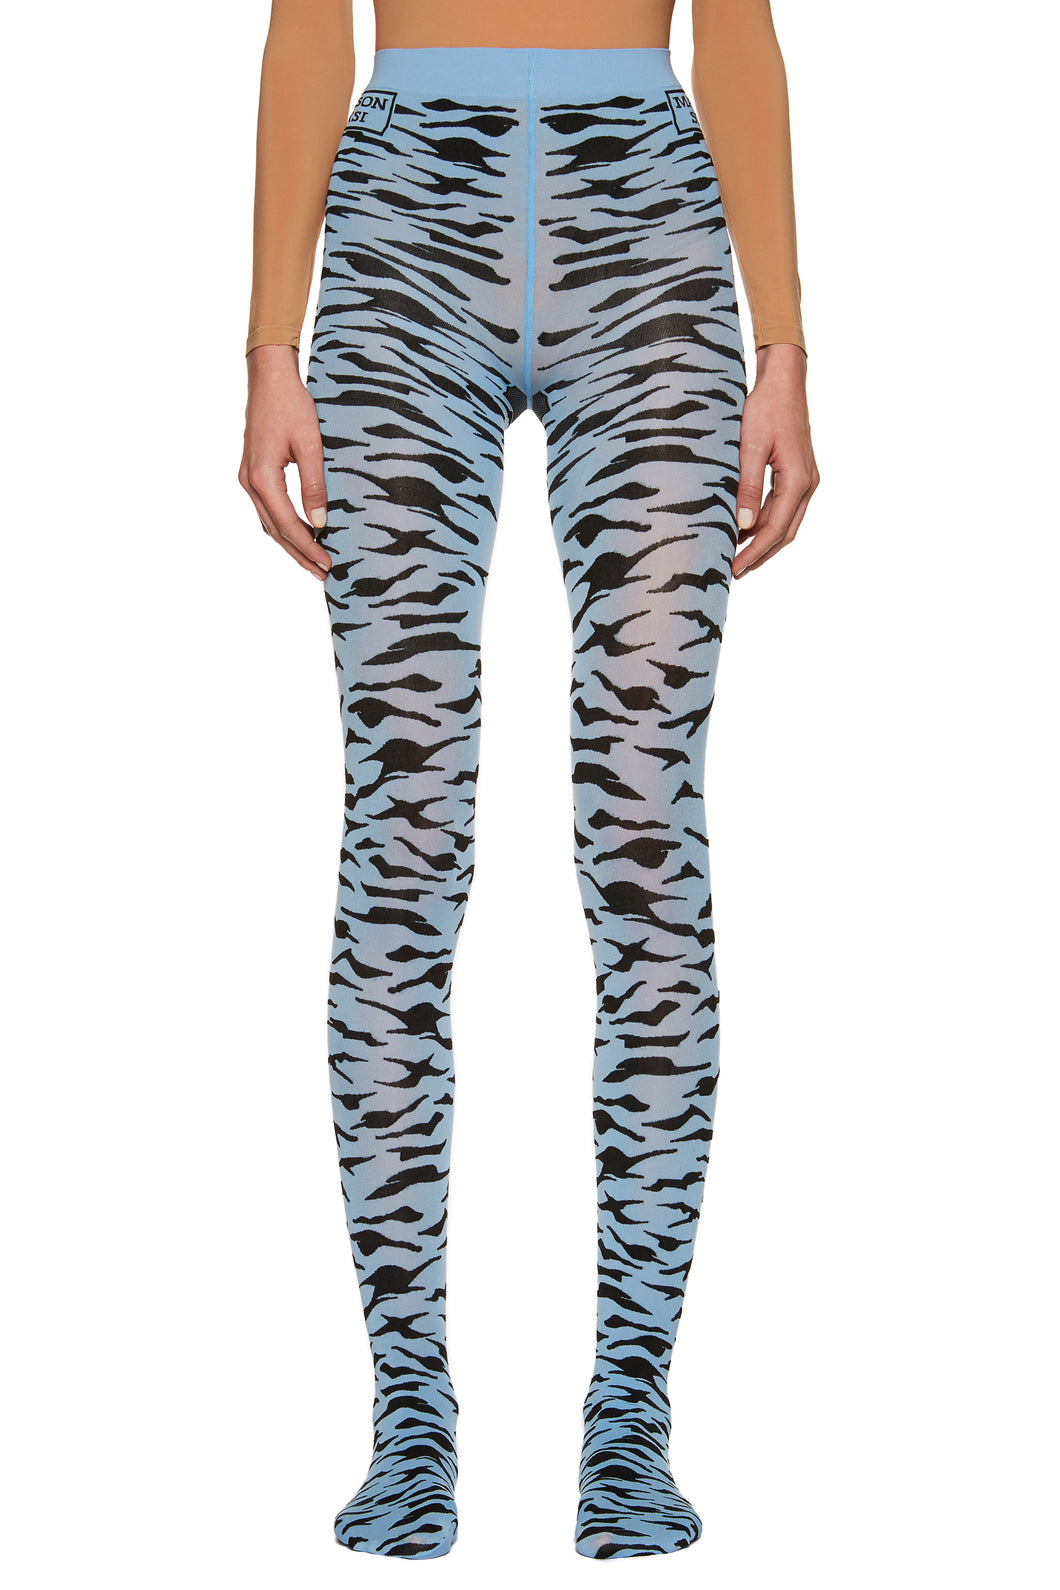 Cerulean Blue 'Zebra Eye' Tights